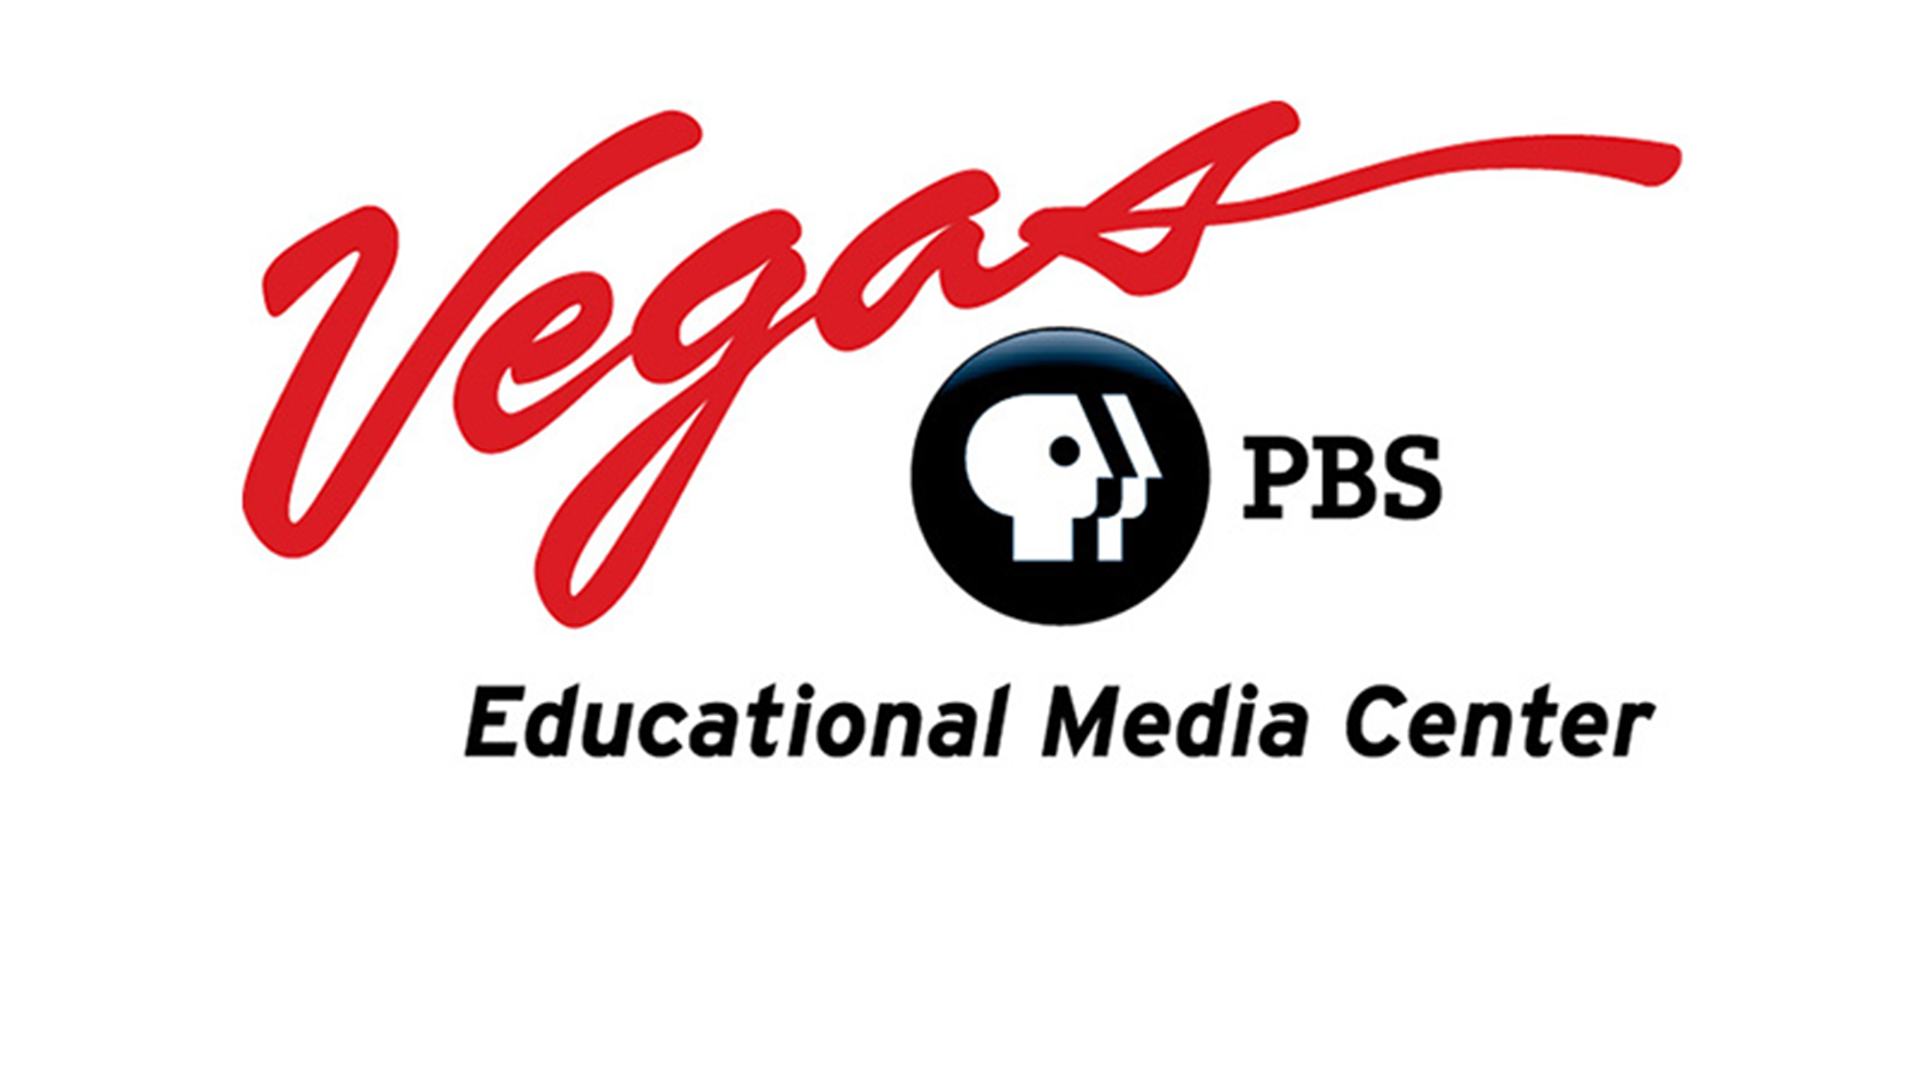 The Vegas PBS Educational Media Center is a full-service educational media distribution center that serves staff and schools throughout the Clark County ...